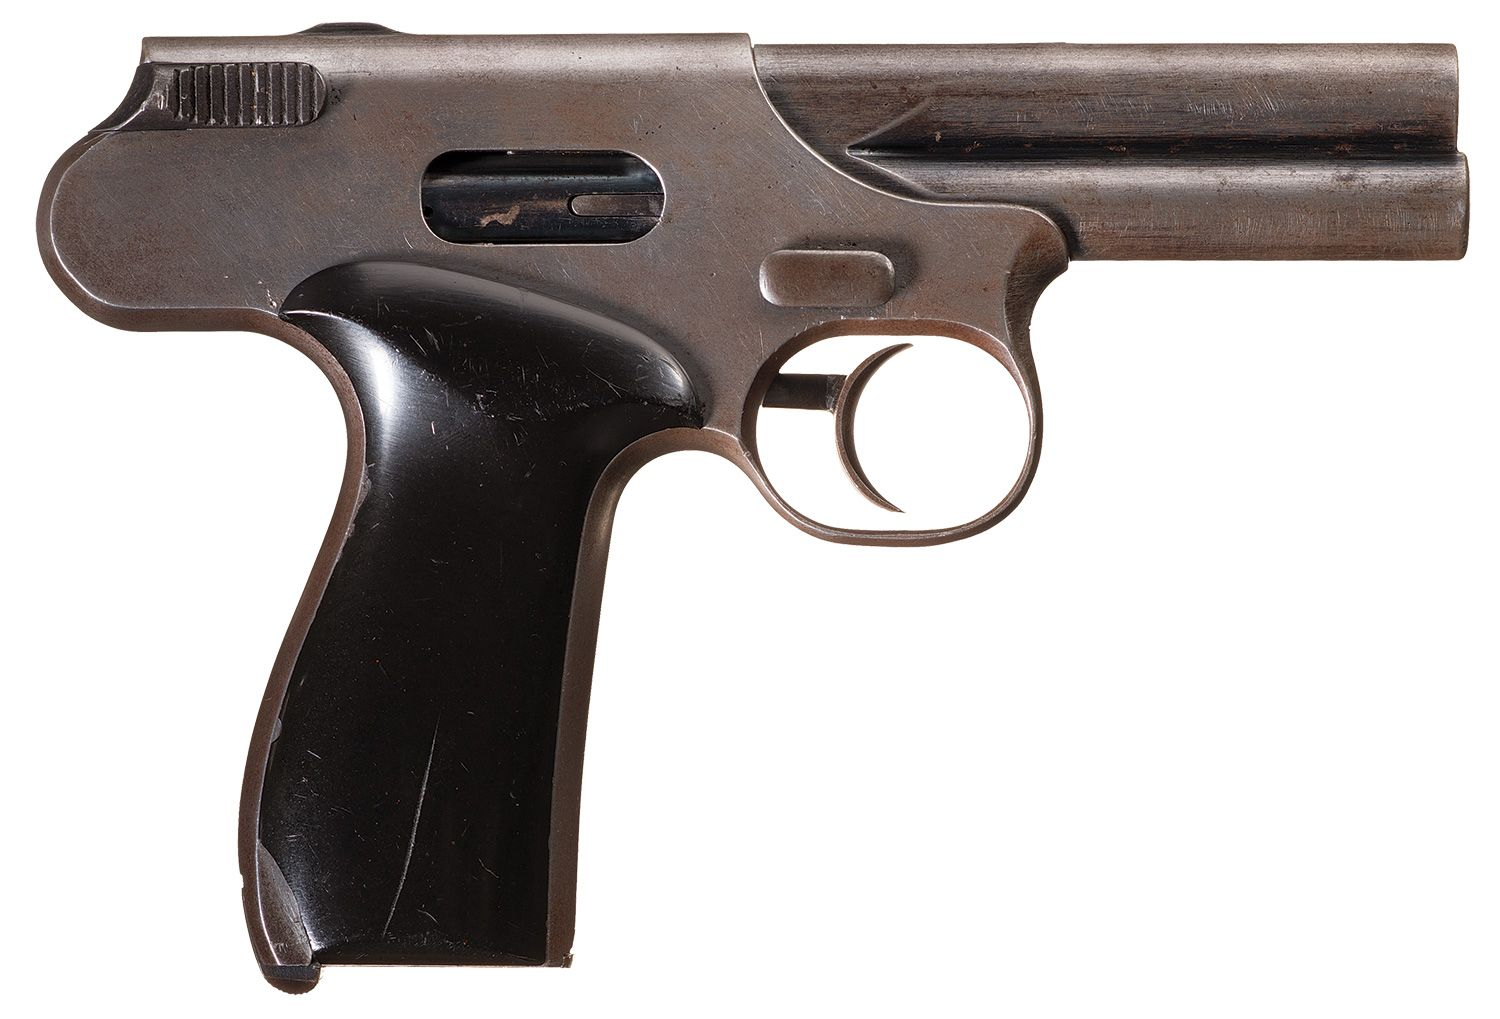 Spp 1 underwater pistol - Interesting Unidentified Experimental Semi Automatic Pistol